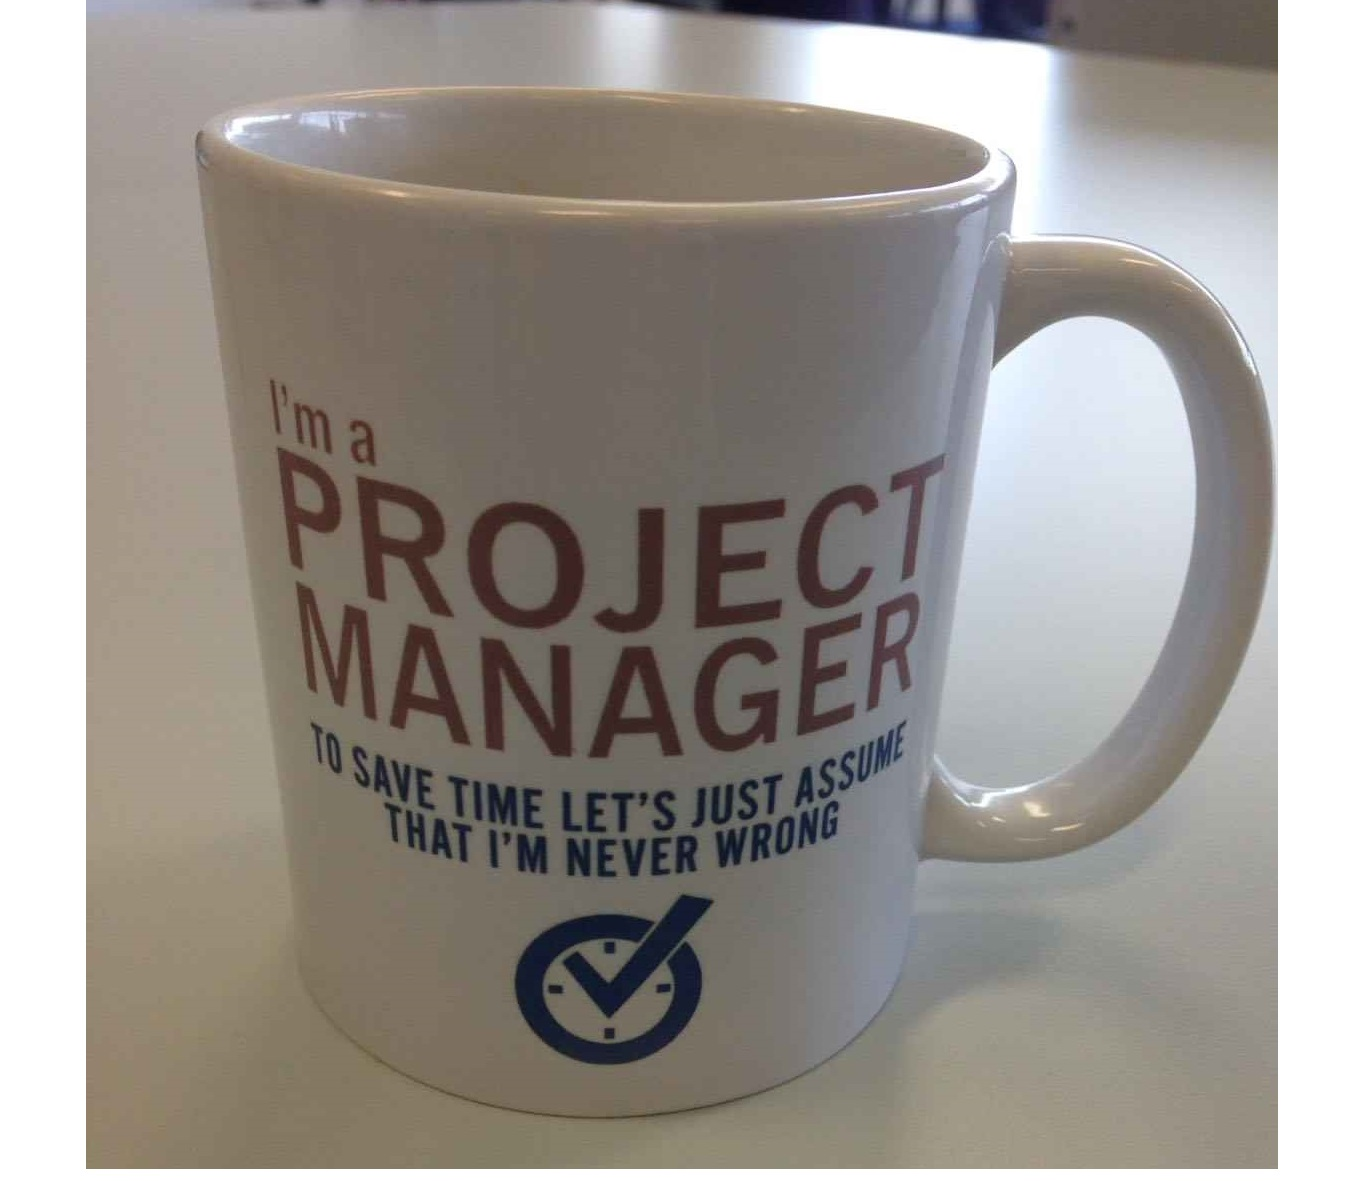 Cana Project Manager